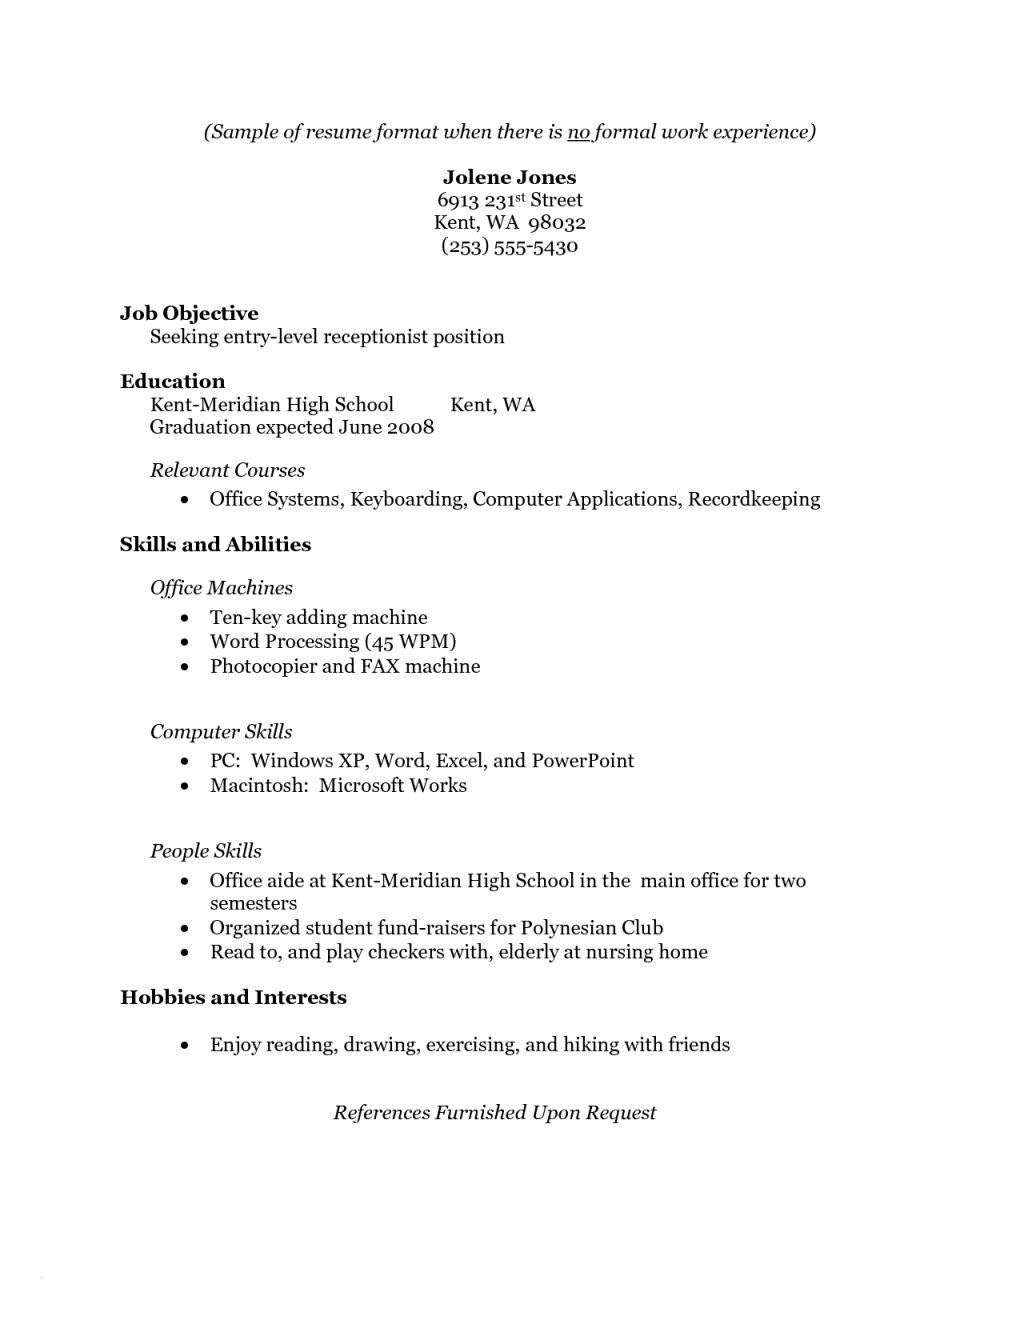 Resume for Nursing Student with No Experience - Resume for High School Students with No Experience Template Fresh